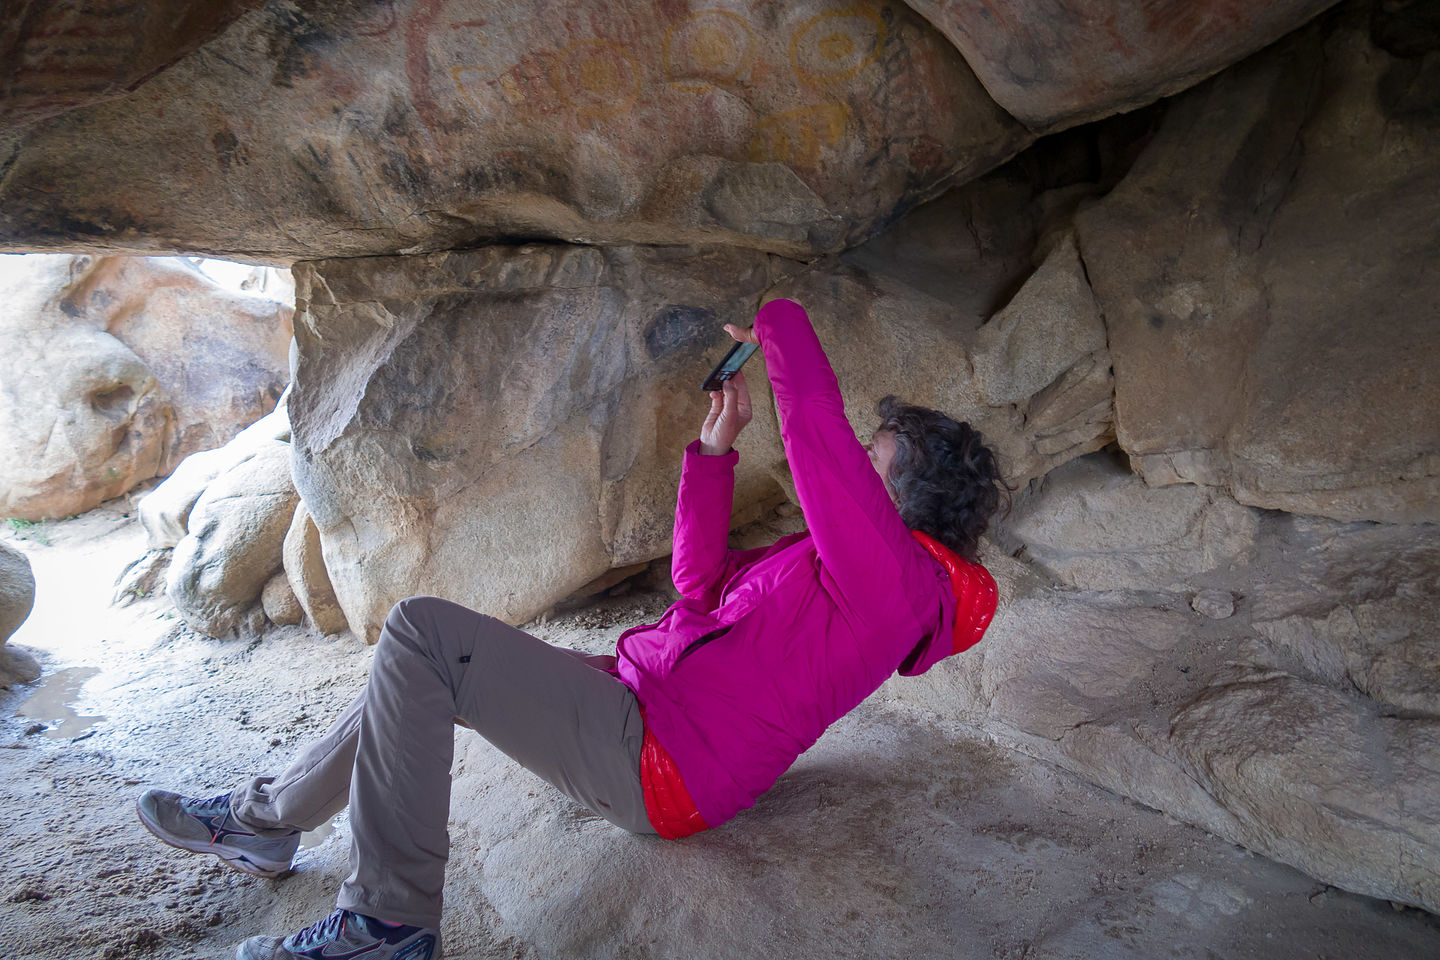 Lolo photographing the cave paintings